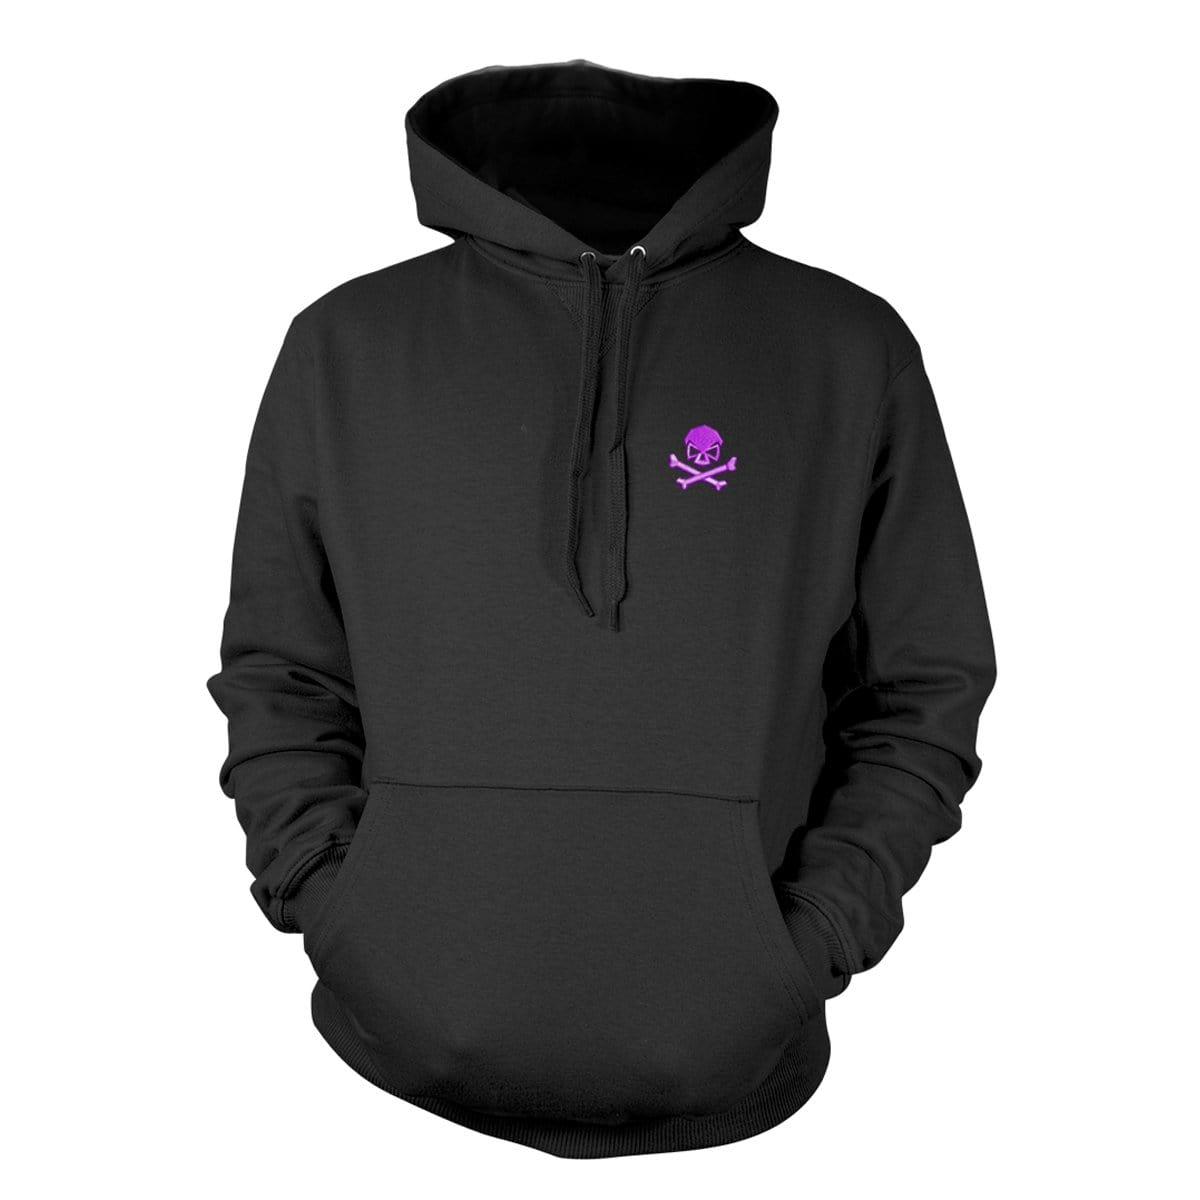 Skull & Bones Hoodie (Embroidered) - Black/Purple - Hoodies - Pipe Hitters Union